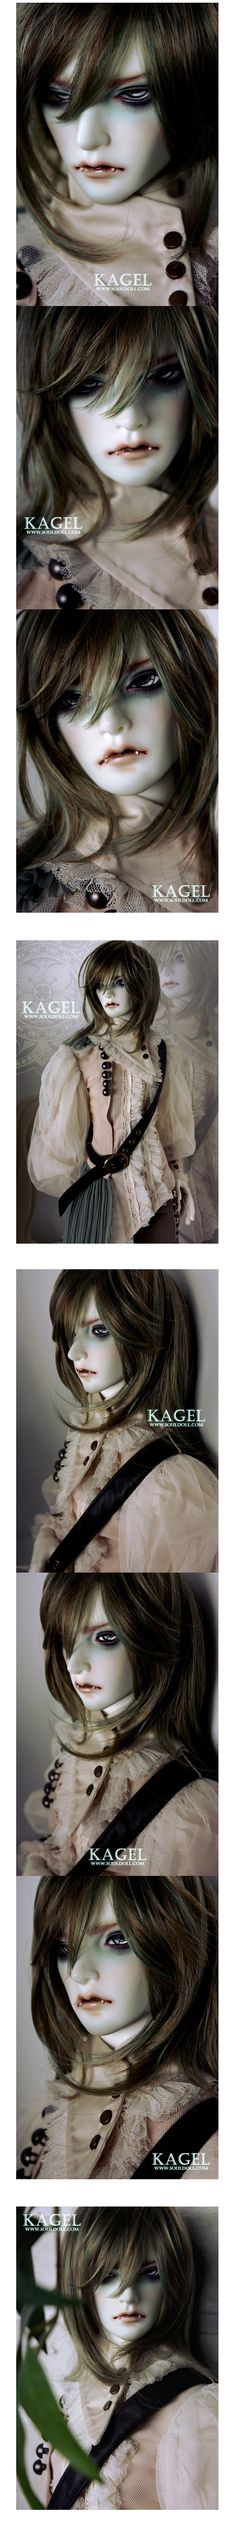 Vampire KAGEL 69cm, Soul Doll - BJD Dolls, Accessories - Alice's Collections